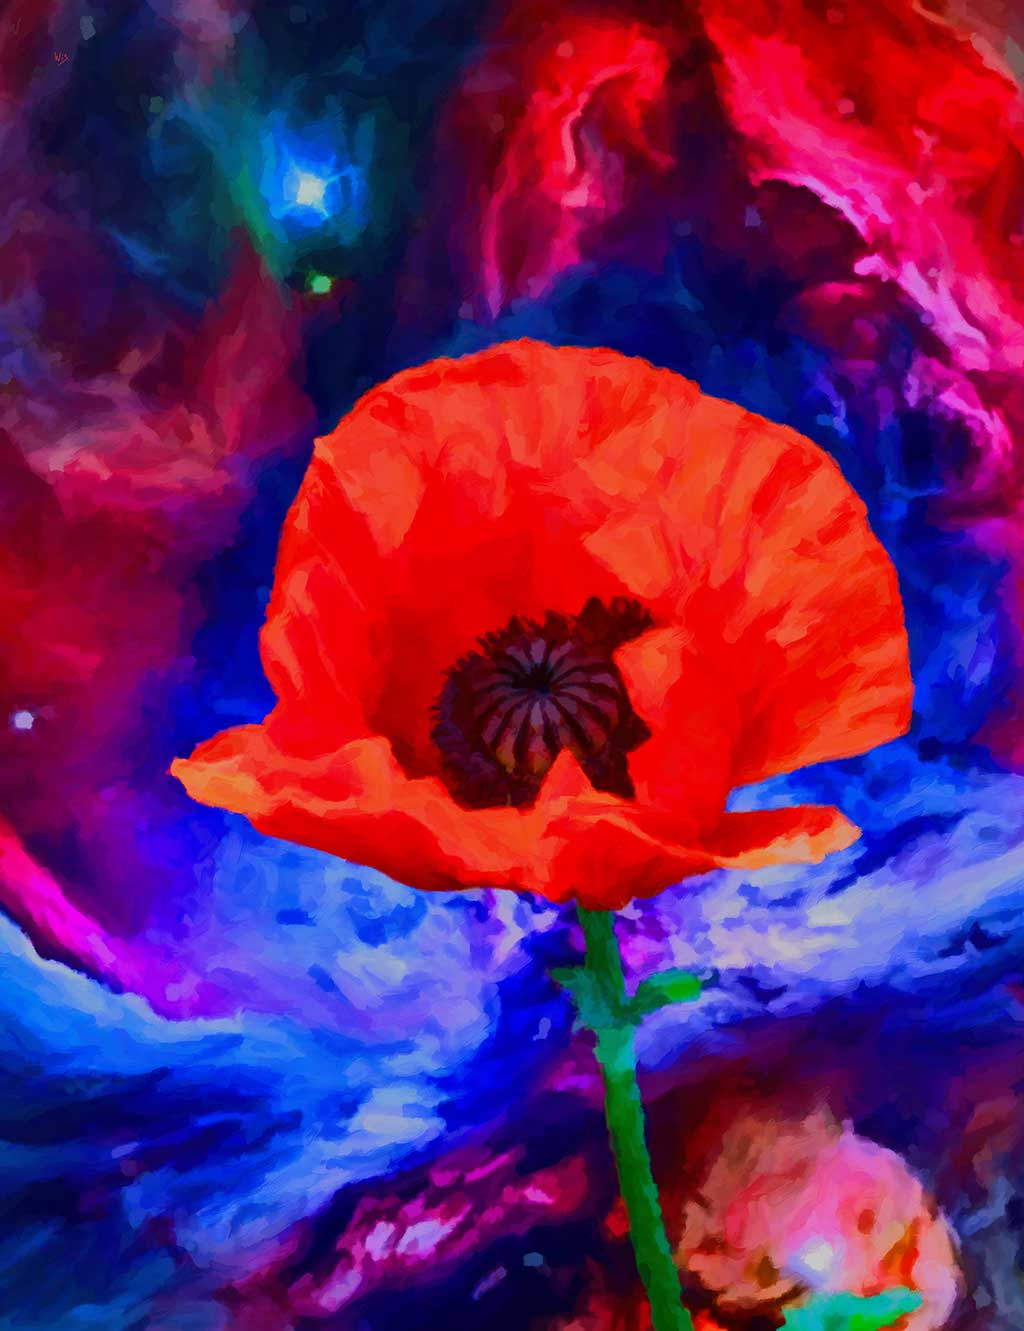 Poppy Flower against Nebula, digital painting on Art Canvas Print by Wieslaw Sadurski